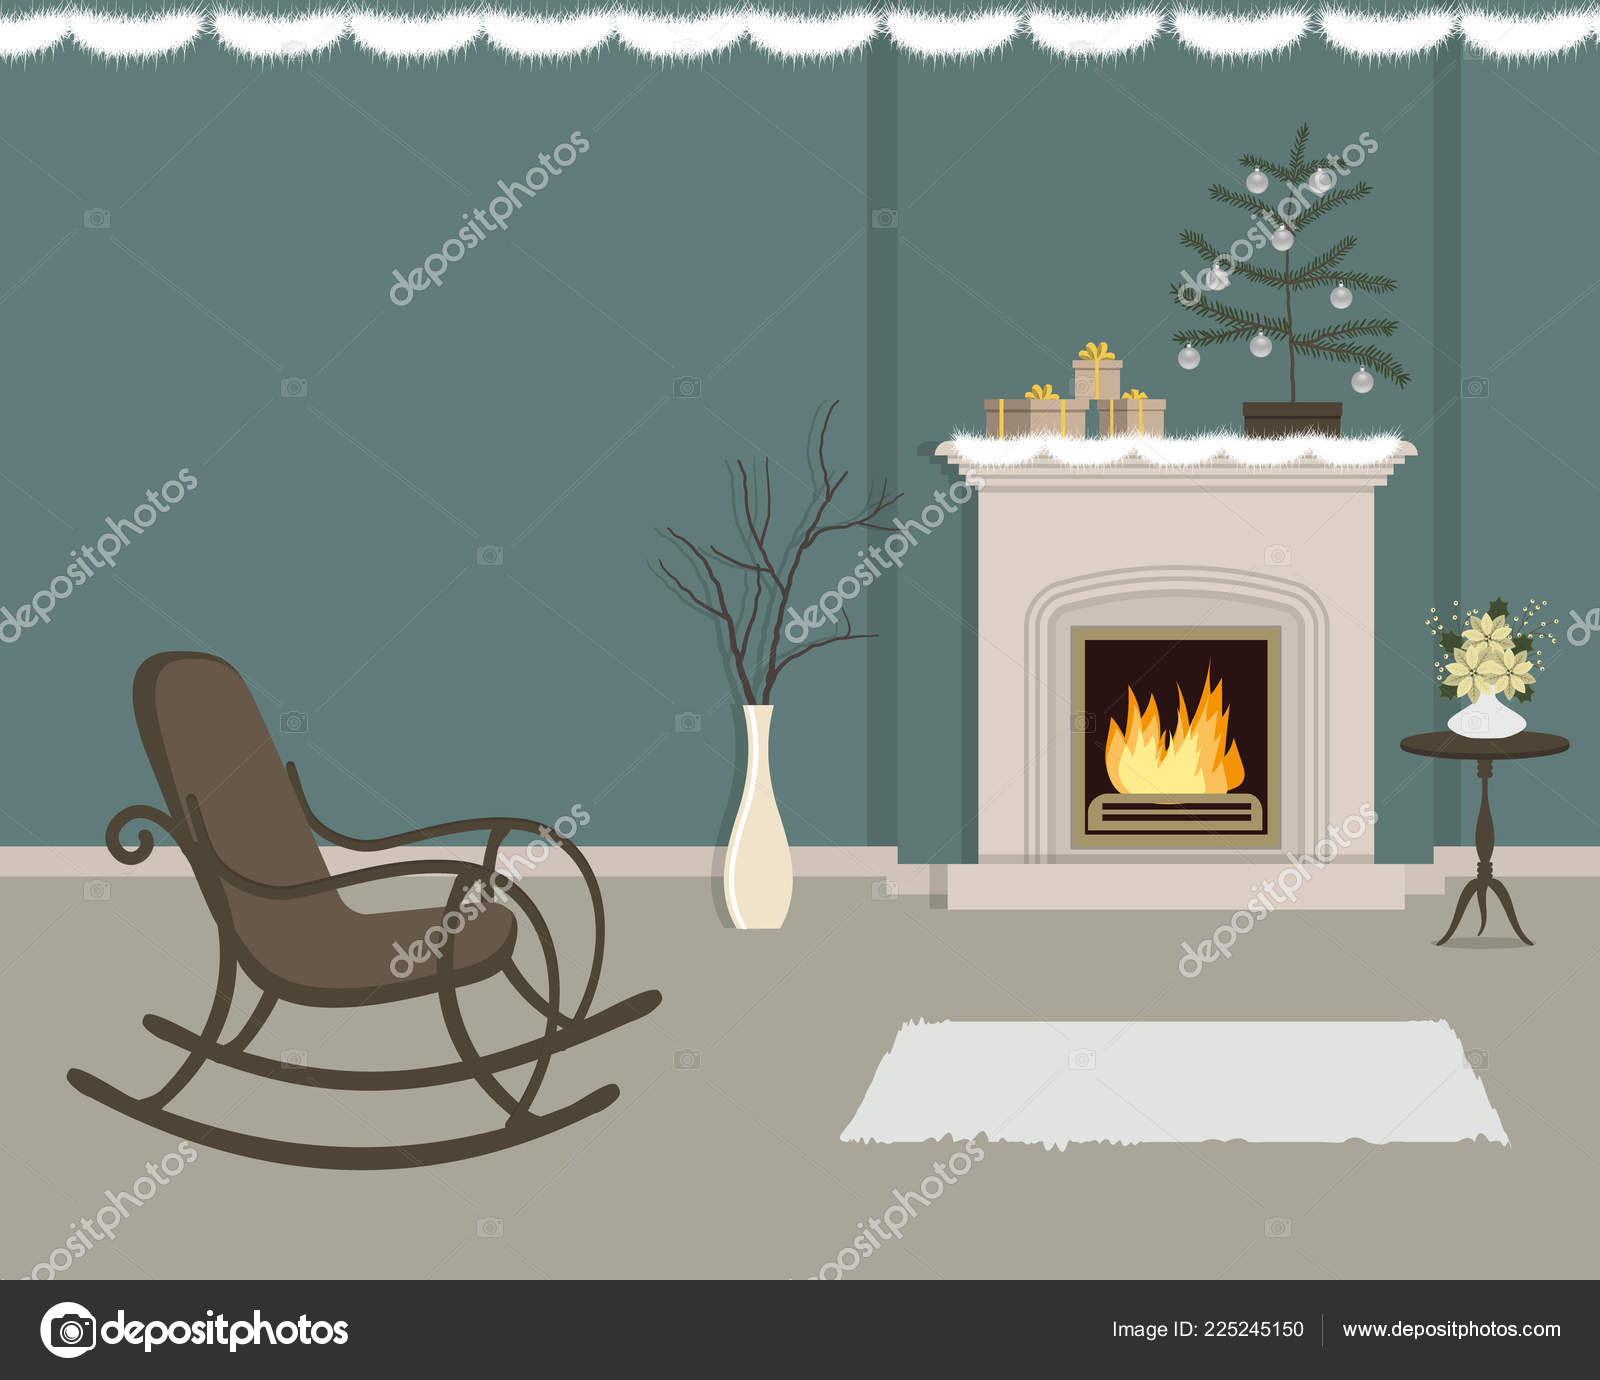 Wondrous Living Room Fireplace Decorated Christmas Decorations Room Machost Co Dining Chair Design Ideas Machostcouk